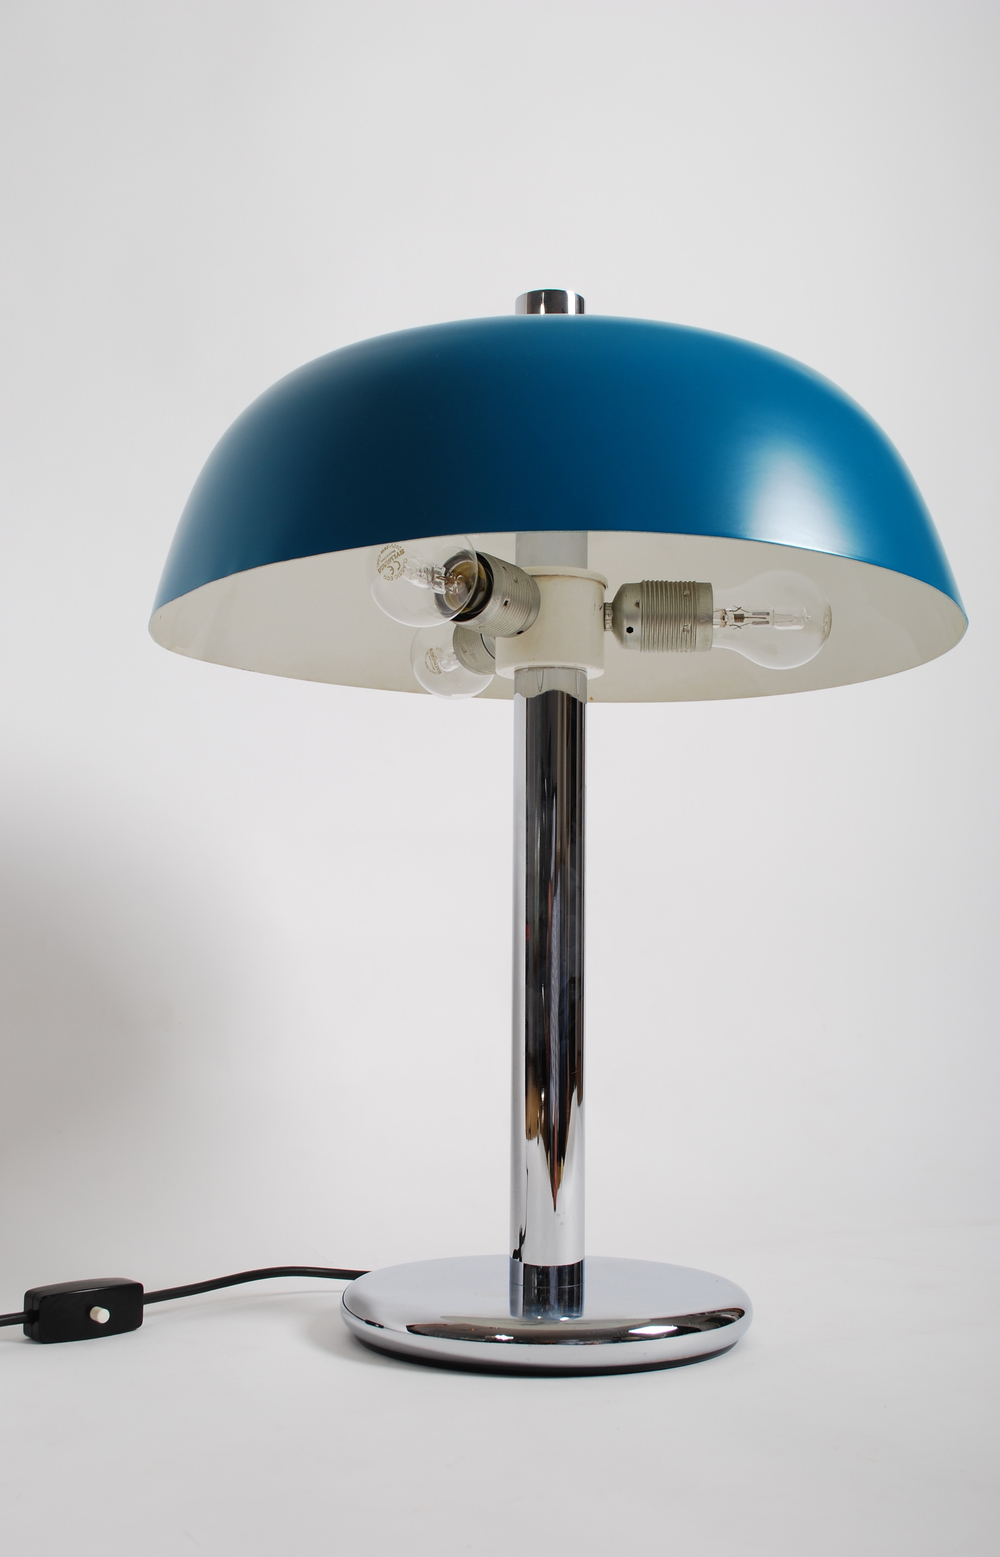 Hillebrand table lamp 60's